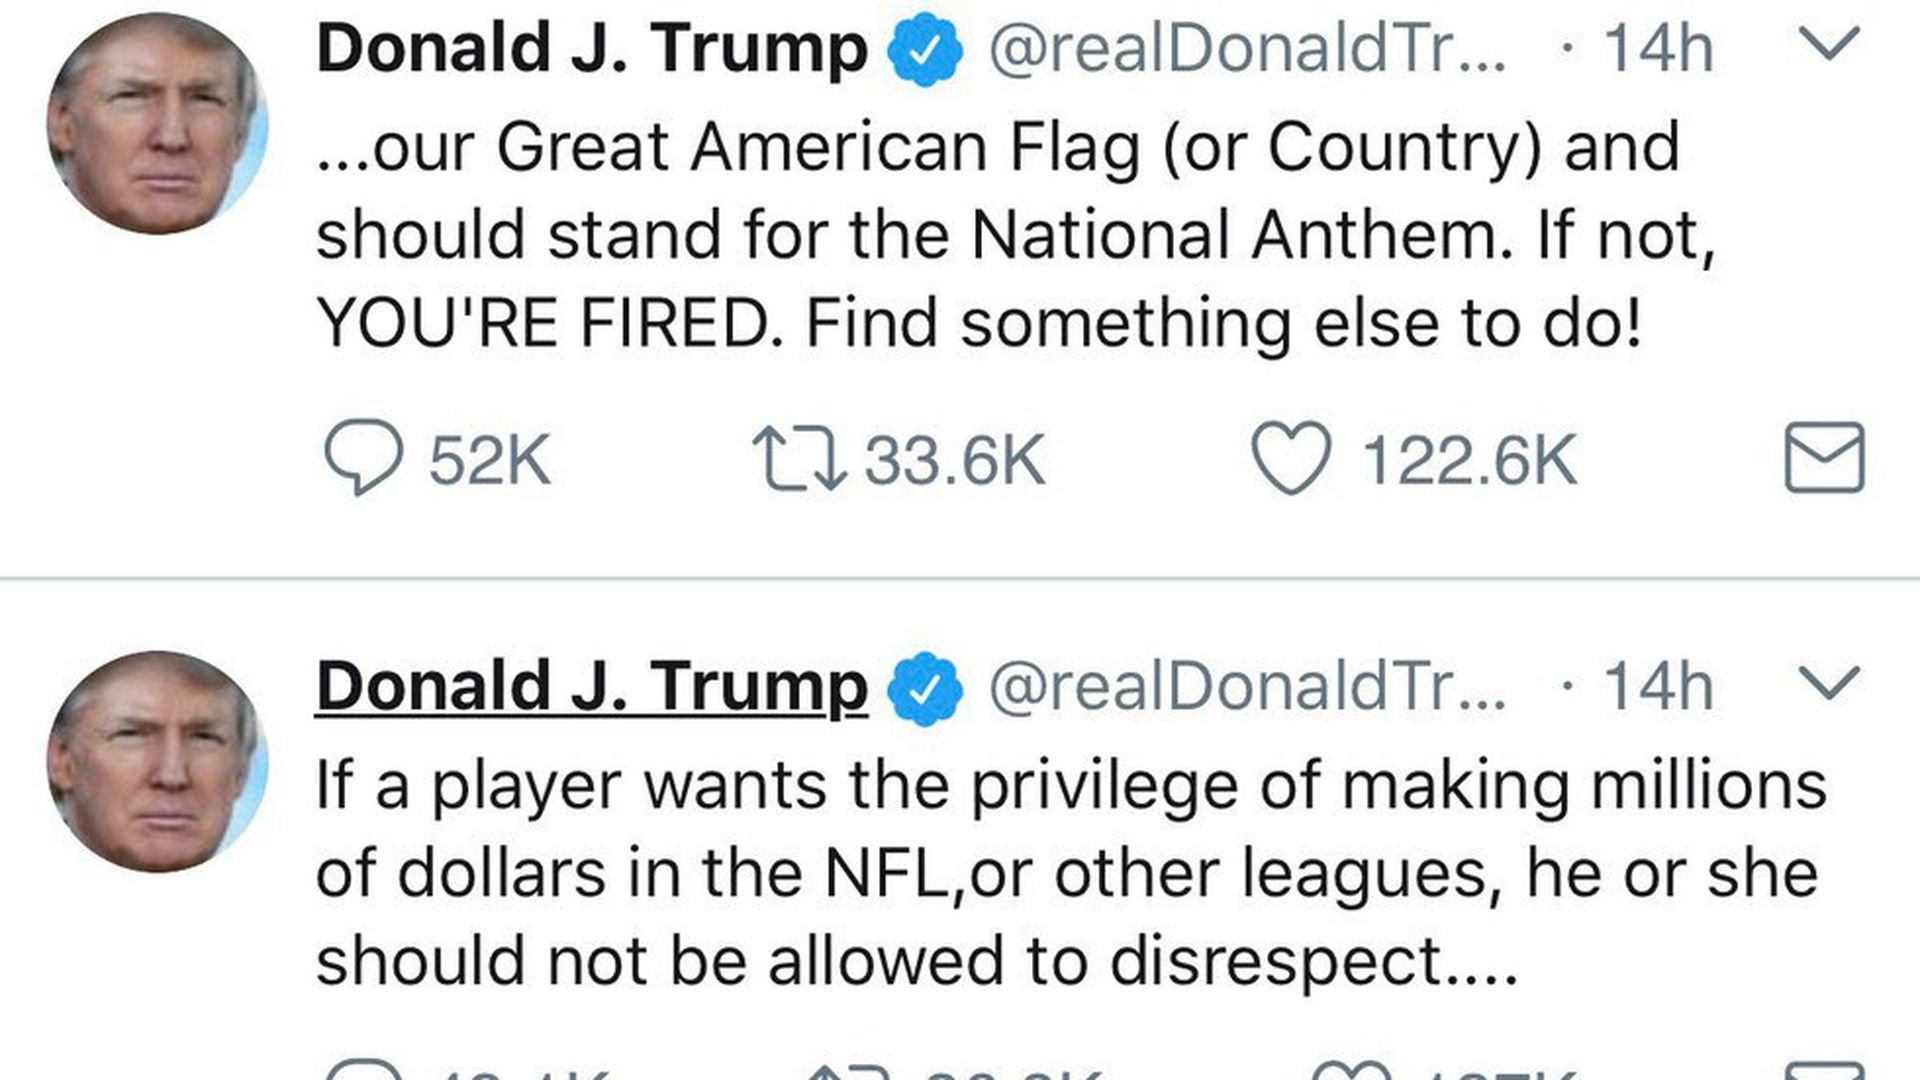 What Trump, the NFL are thinking